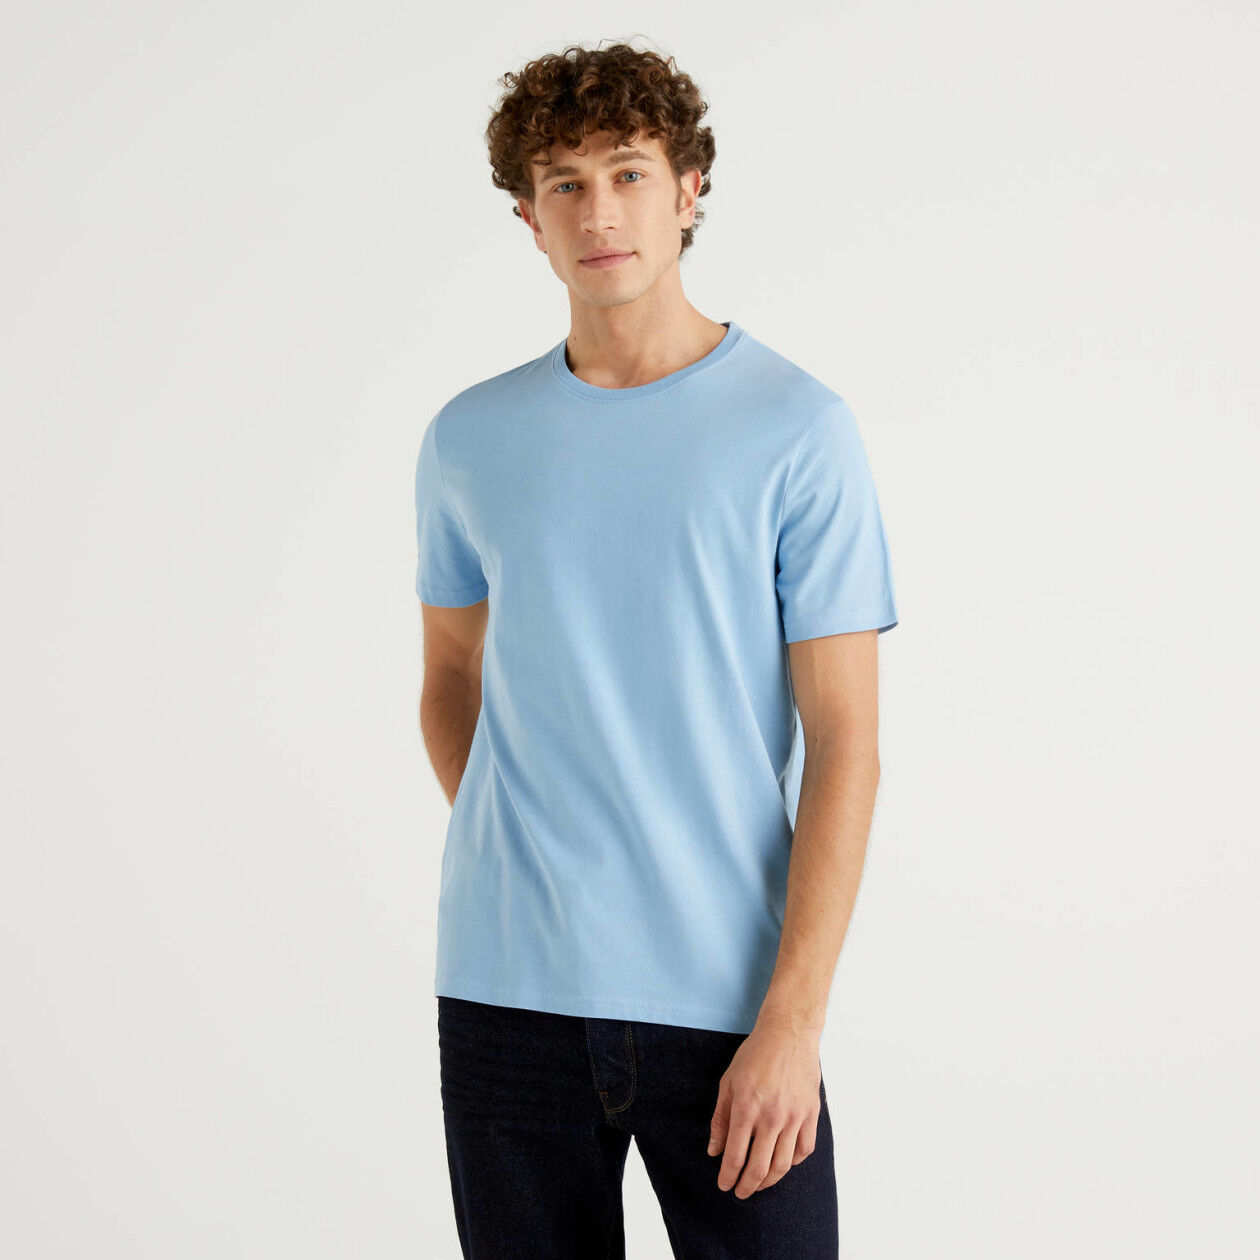 Sky blue t-shirt in pure cotton